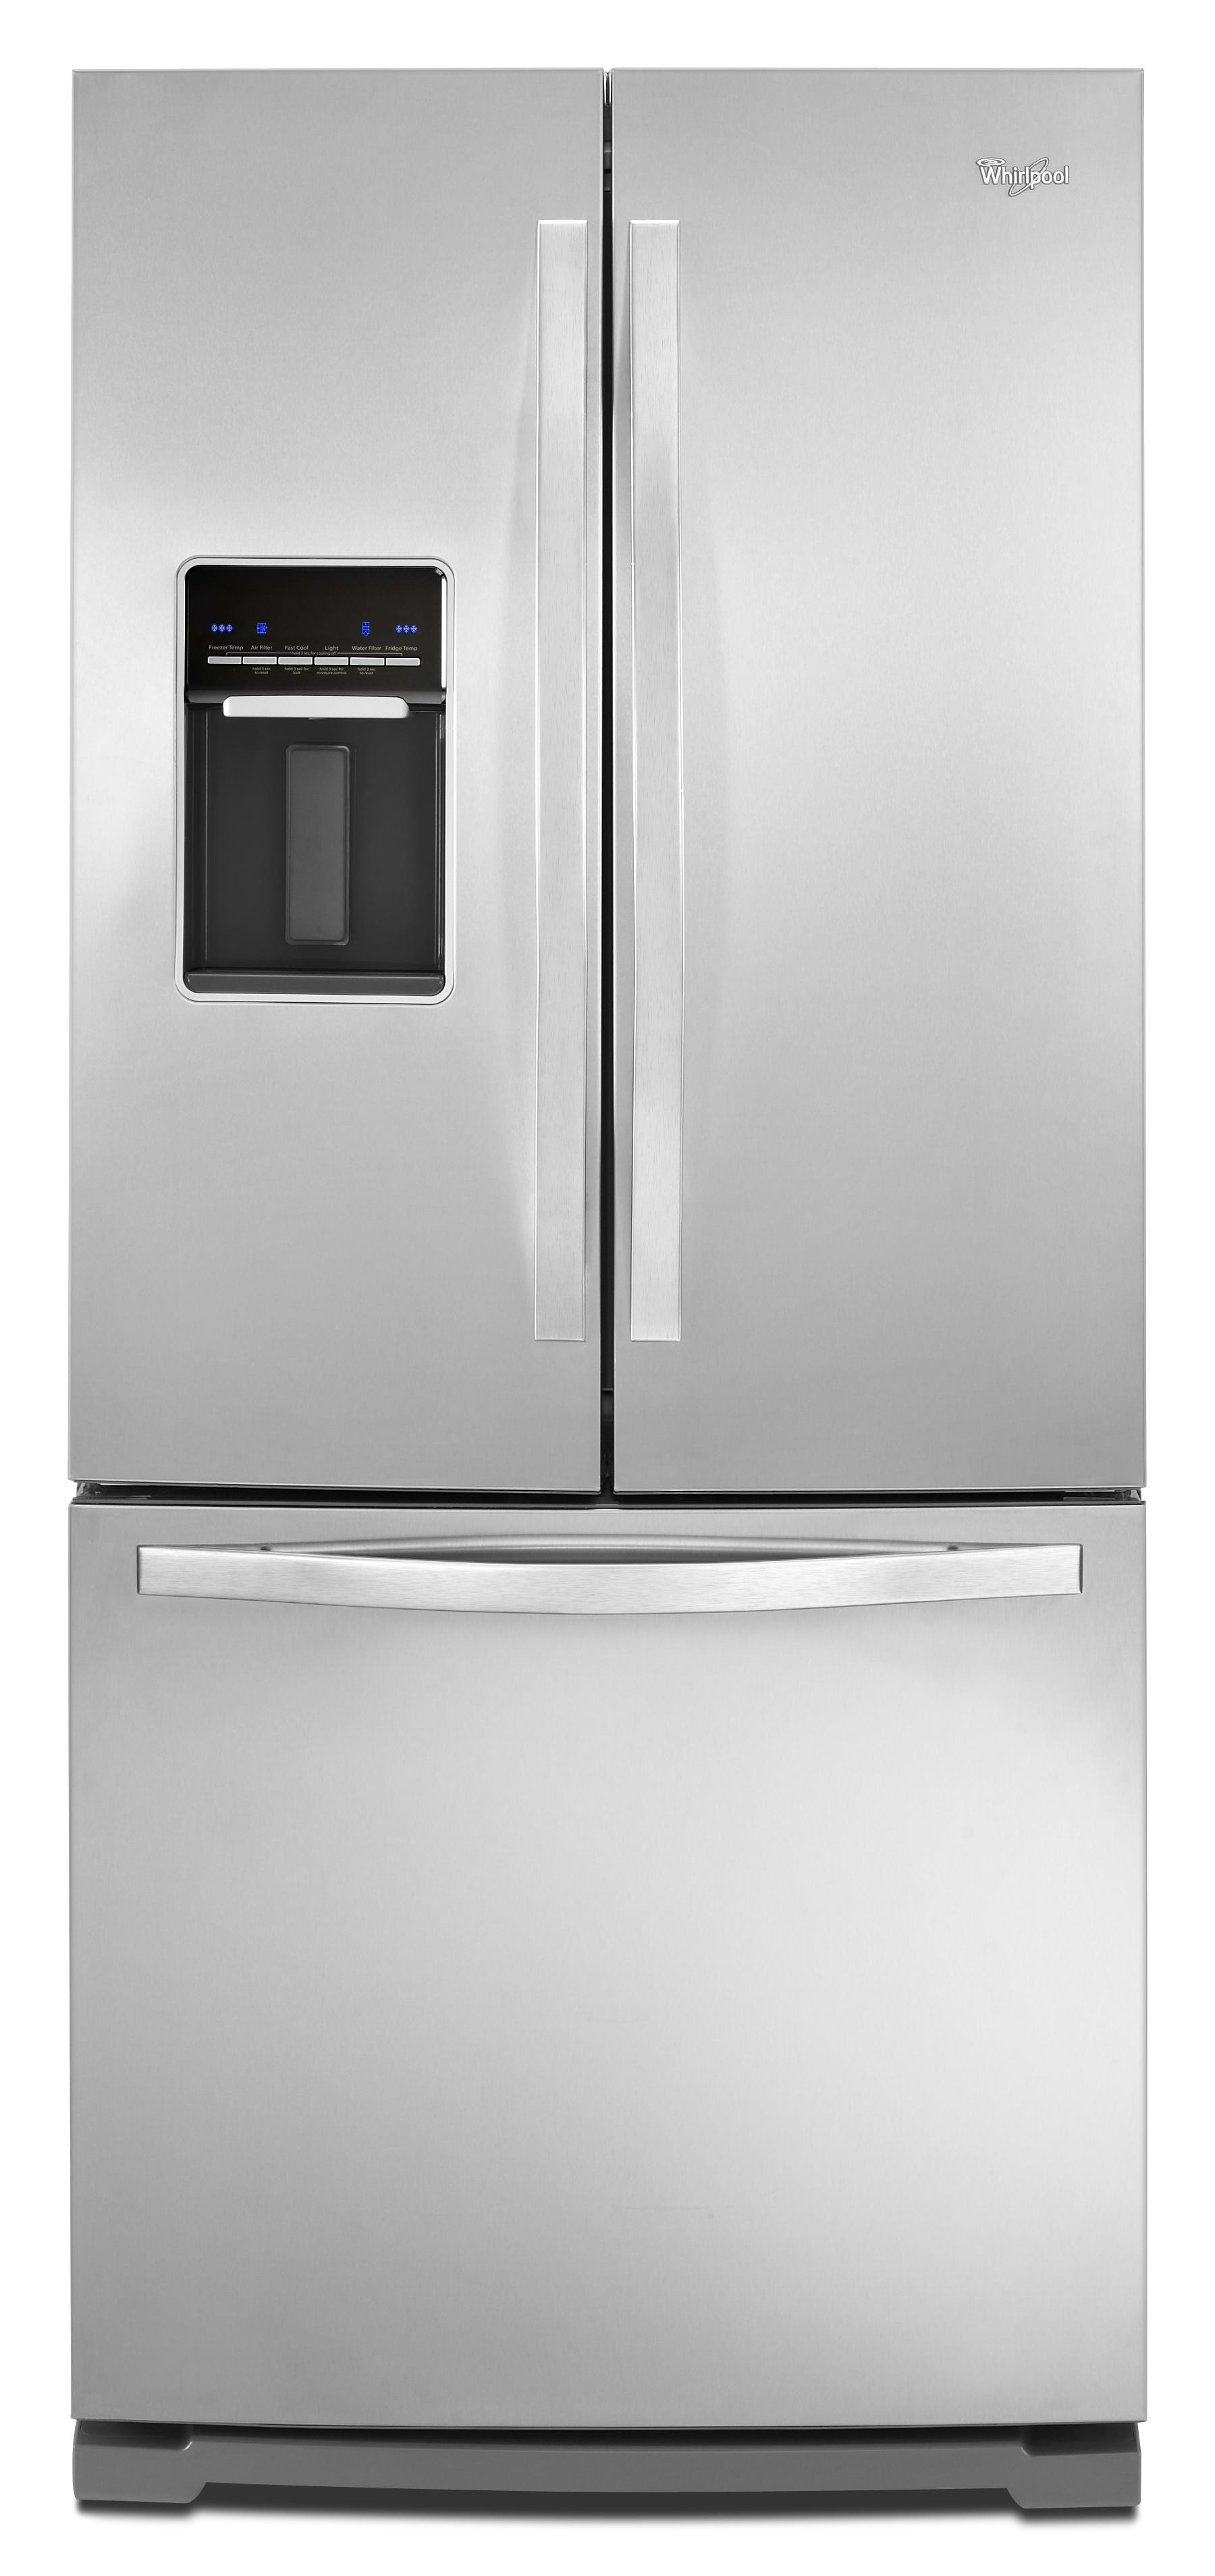 Whirlpool 19 6 cu ft french door refrigerator with for 6 ft wide french doors